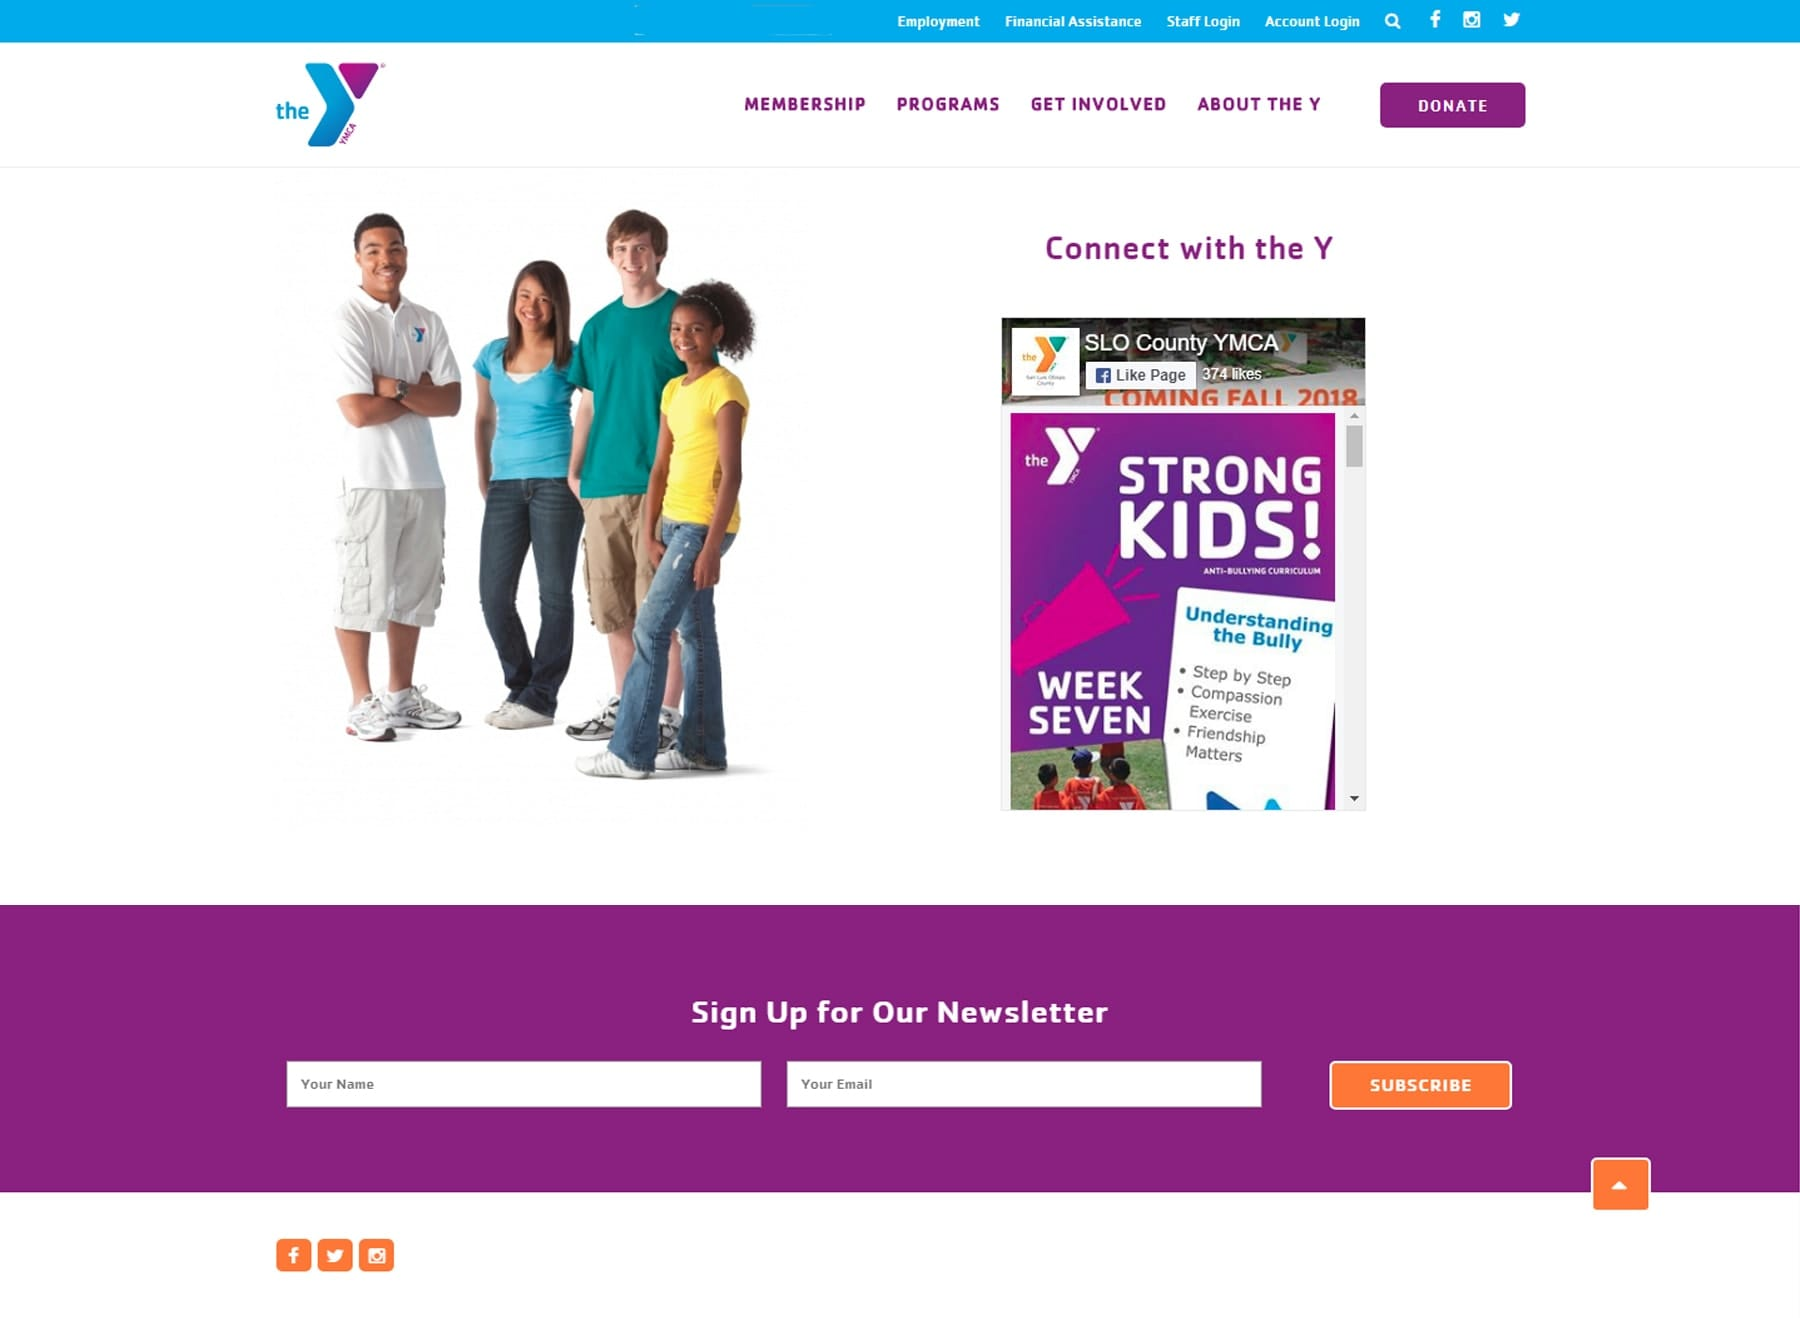 newsletter-form-signup-ymca.jpg